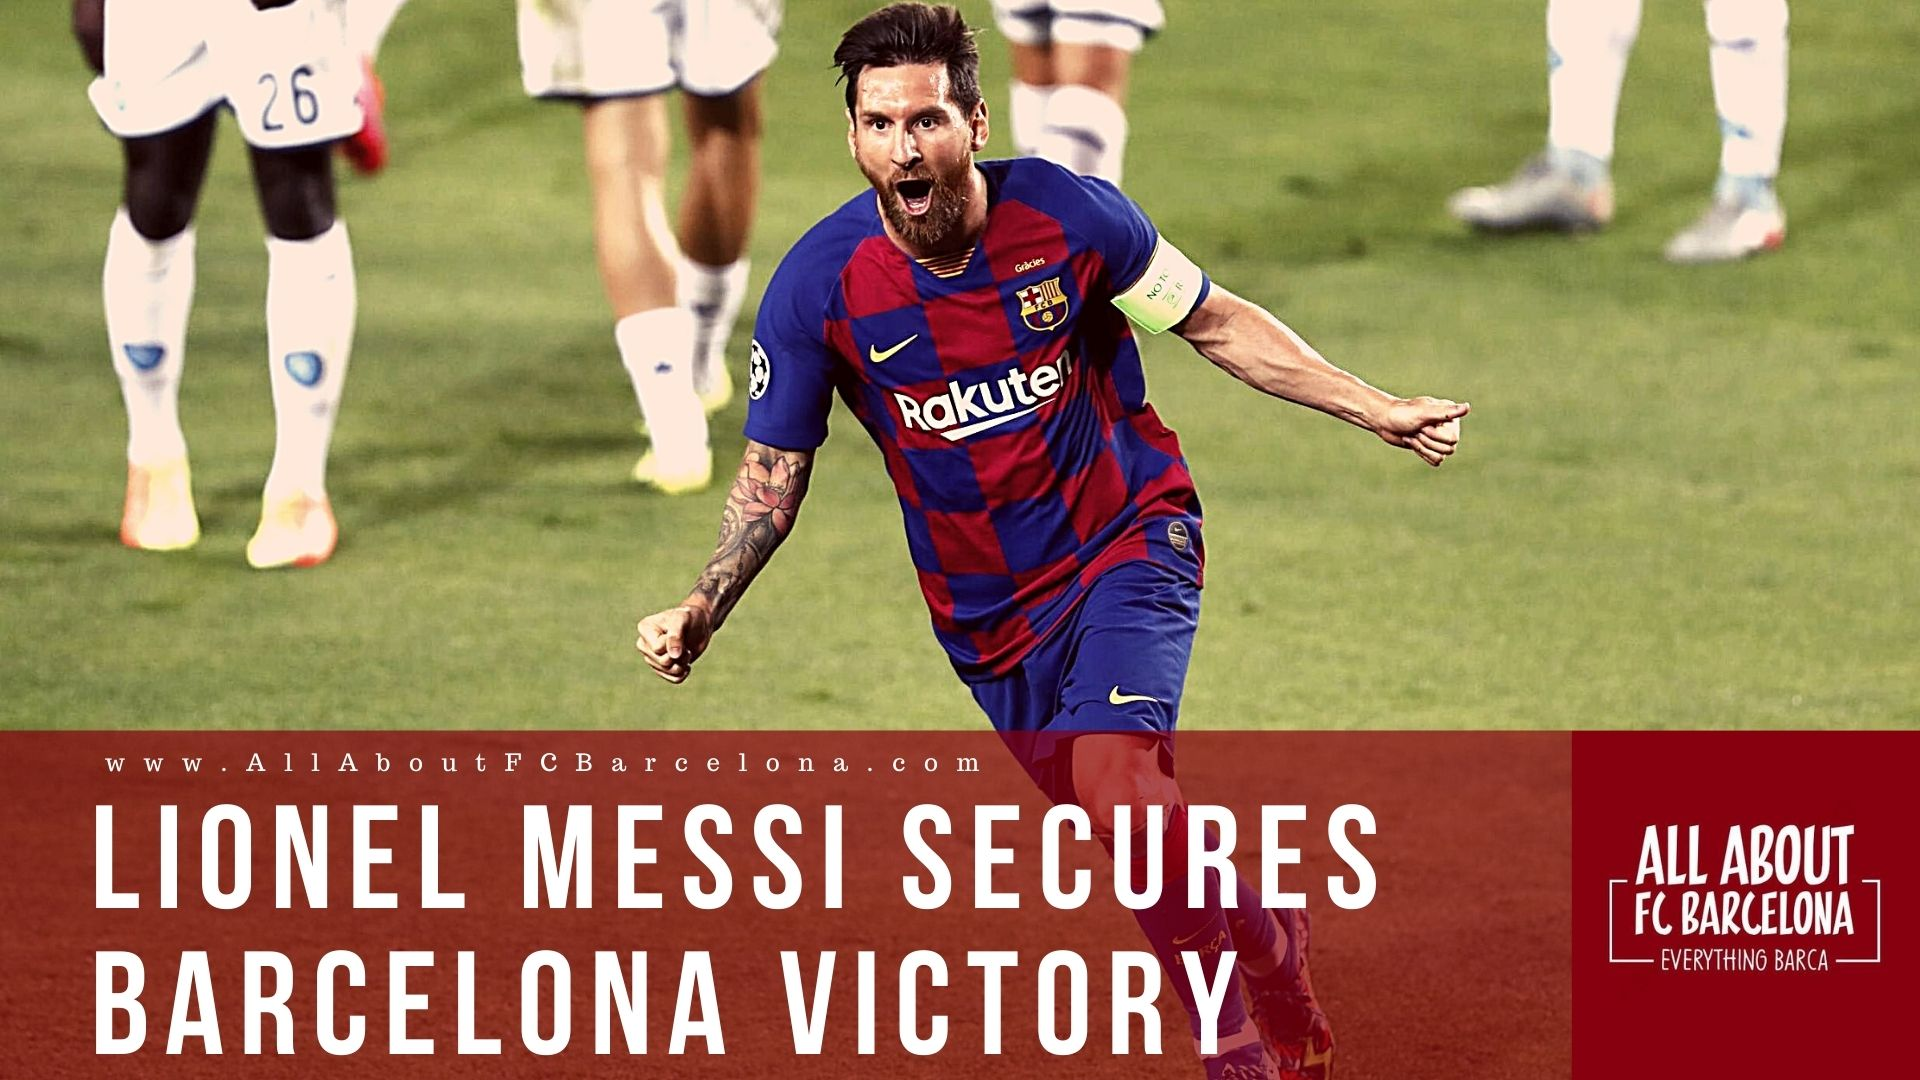 Lionel Messi Inspires Barcelona Victory